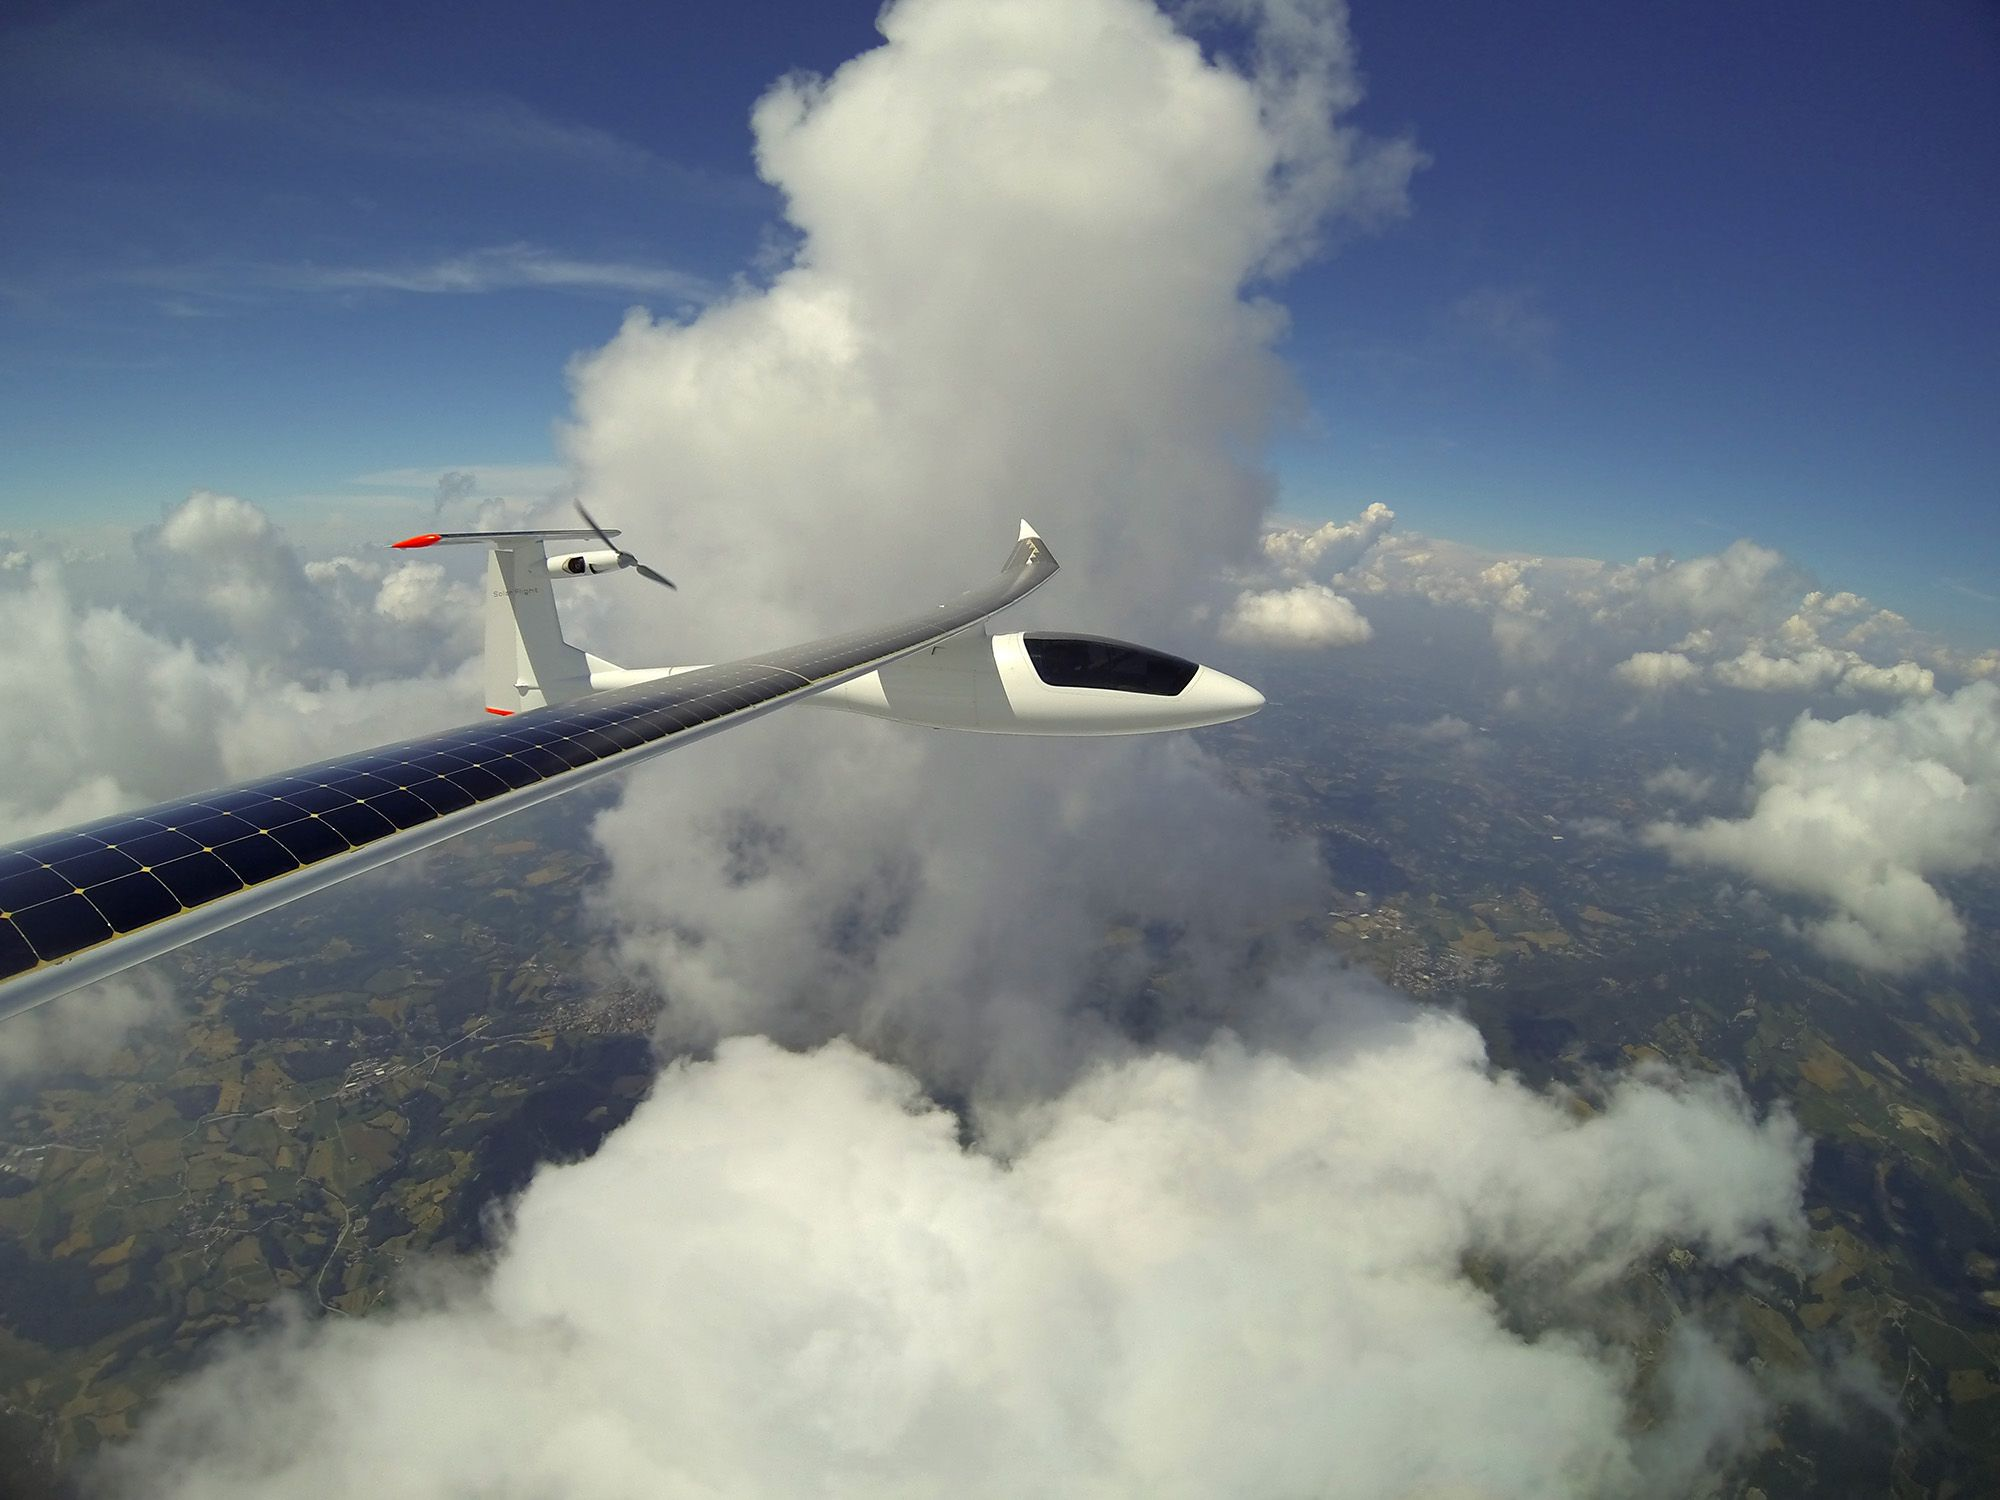 Cruising with the #SunseekerDuo above the clouds, on the way to the Pavullo airport.